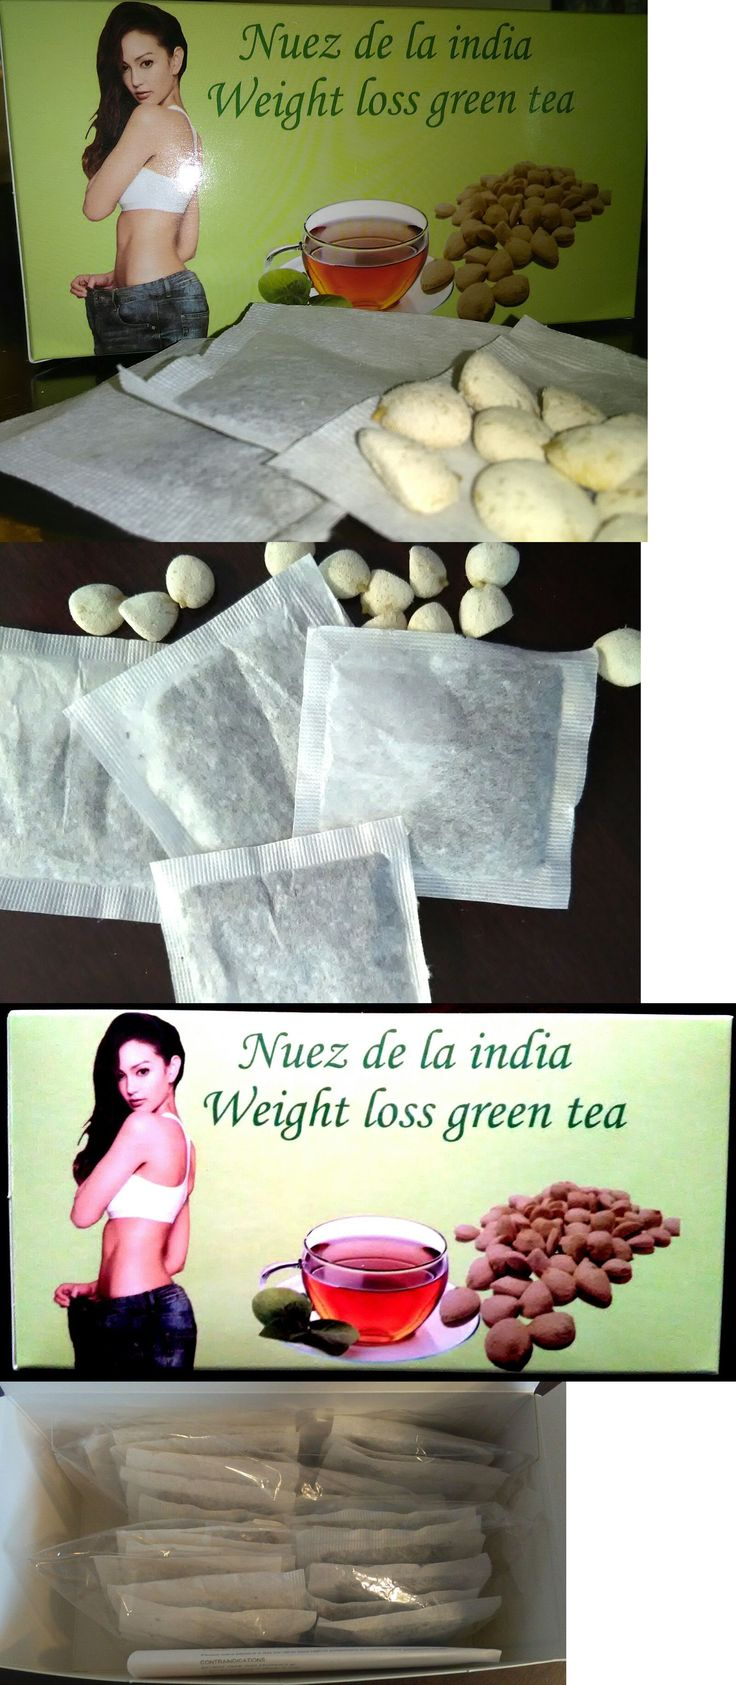 Weight Loss: Nuez De La India Tea (30 Bags) 100% Te Original,Weight Loss,Diet Seed,Indian Nut -> BUY IT NOW ONLY: $17.05 on eBay!